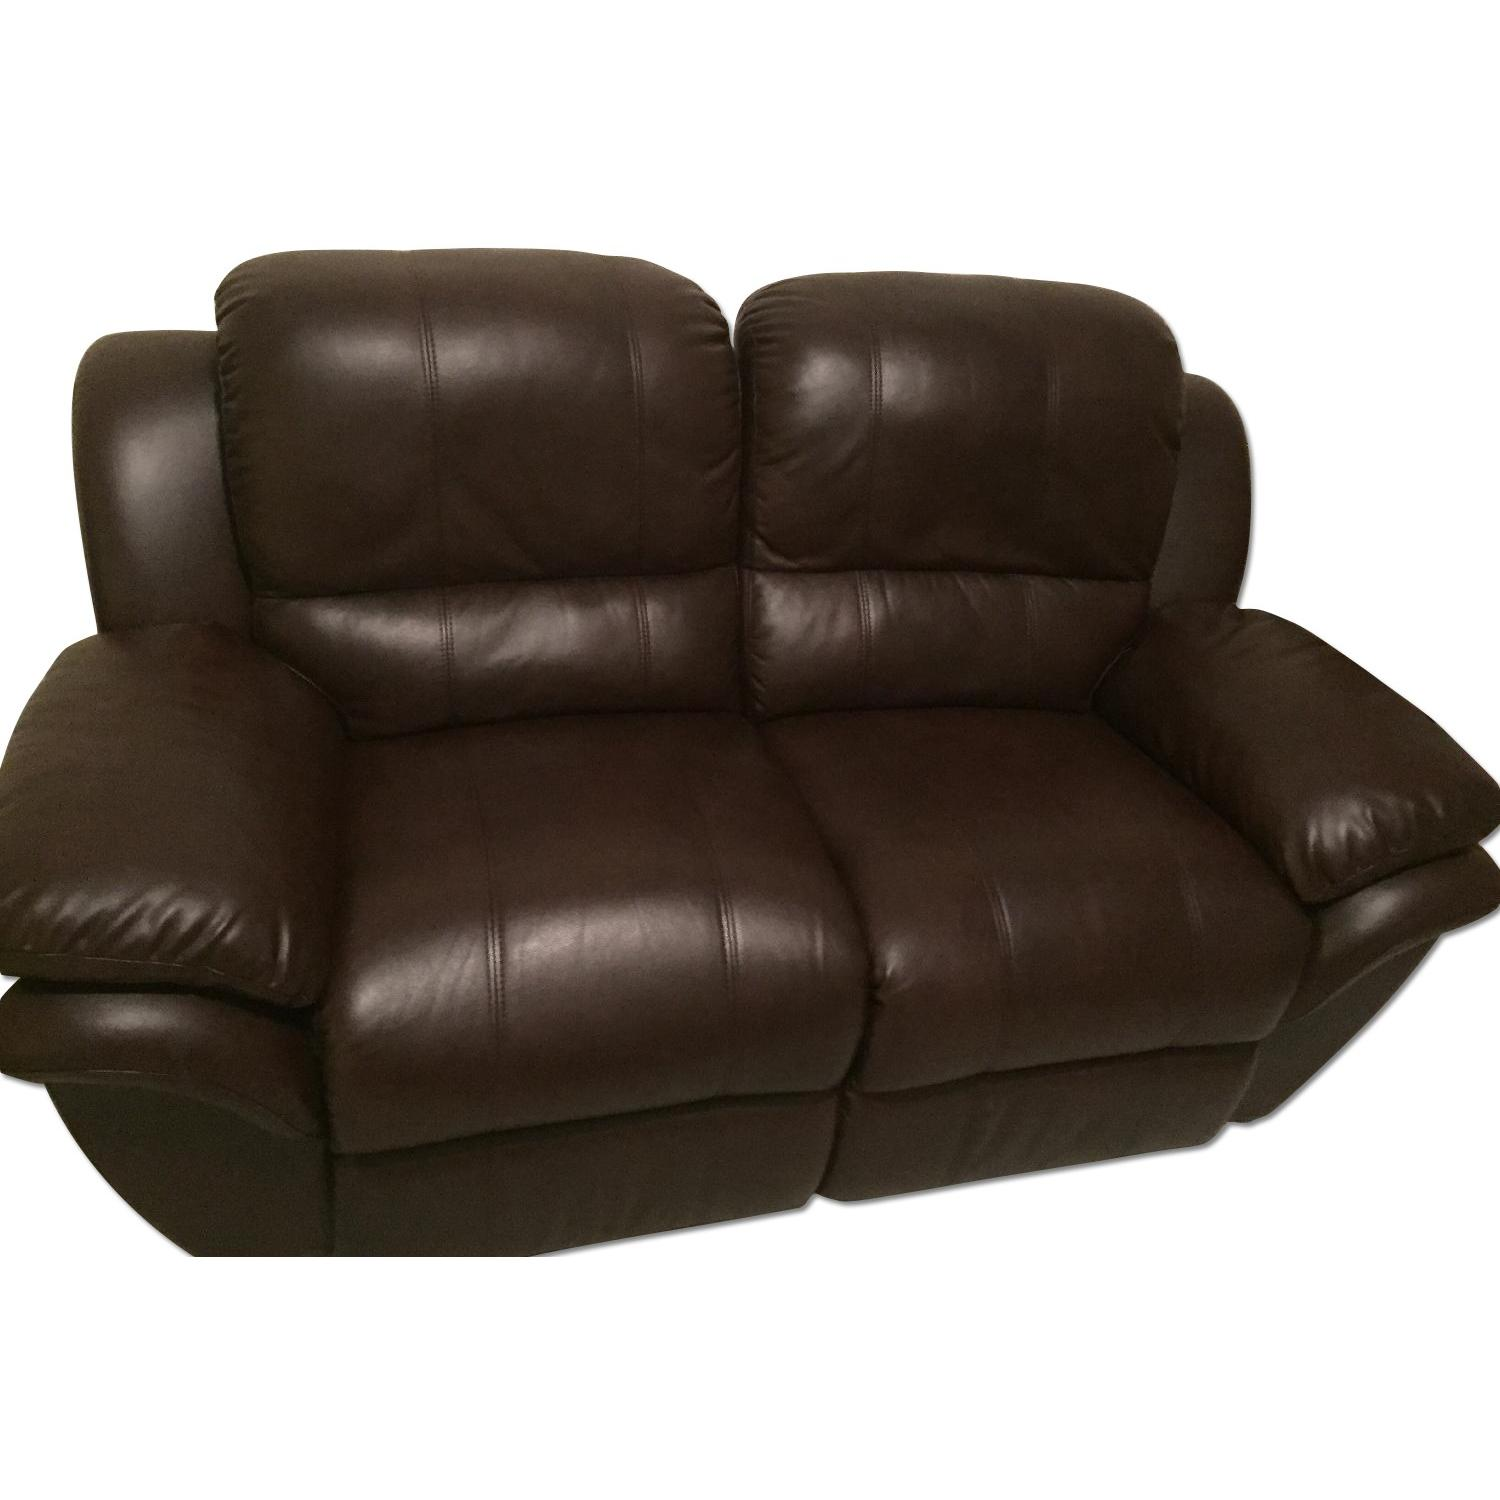 Leather Reclining Loveseat - image-0